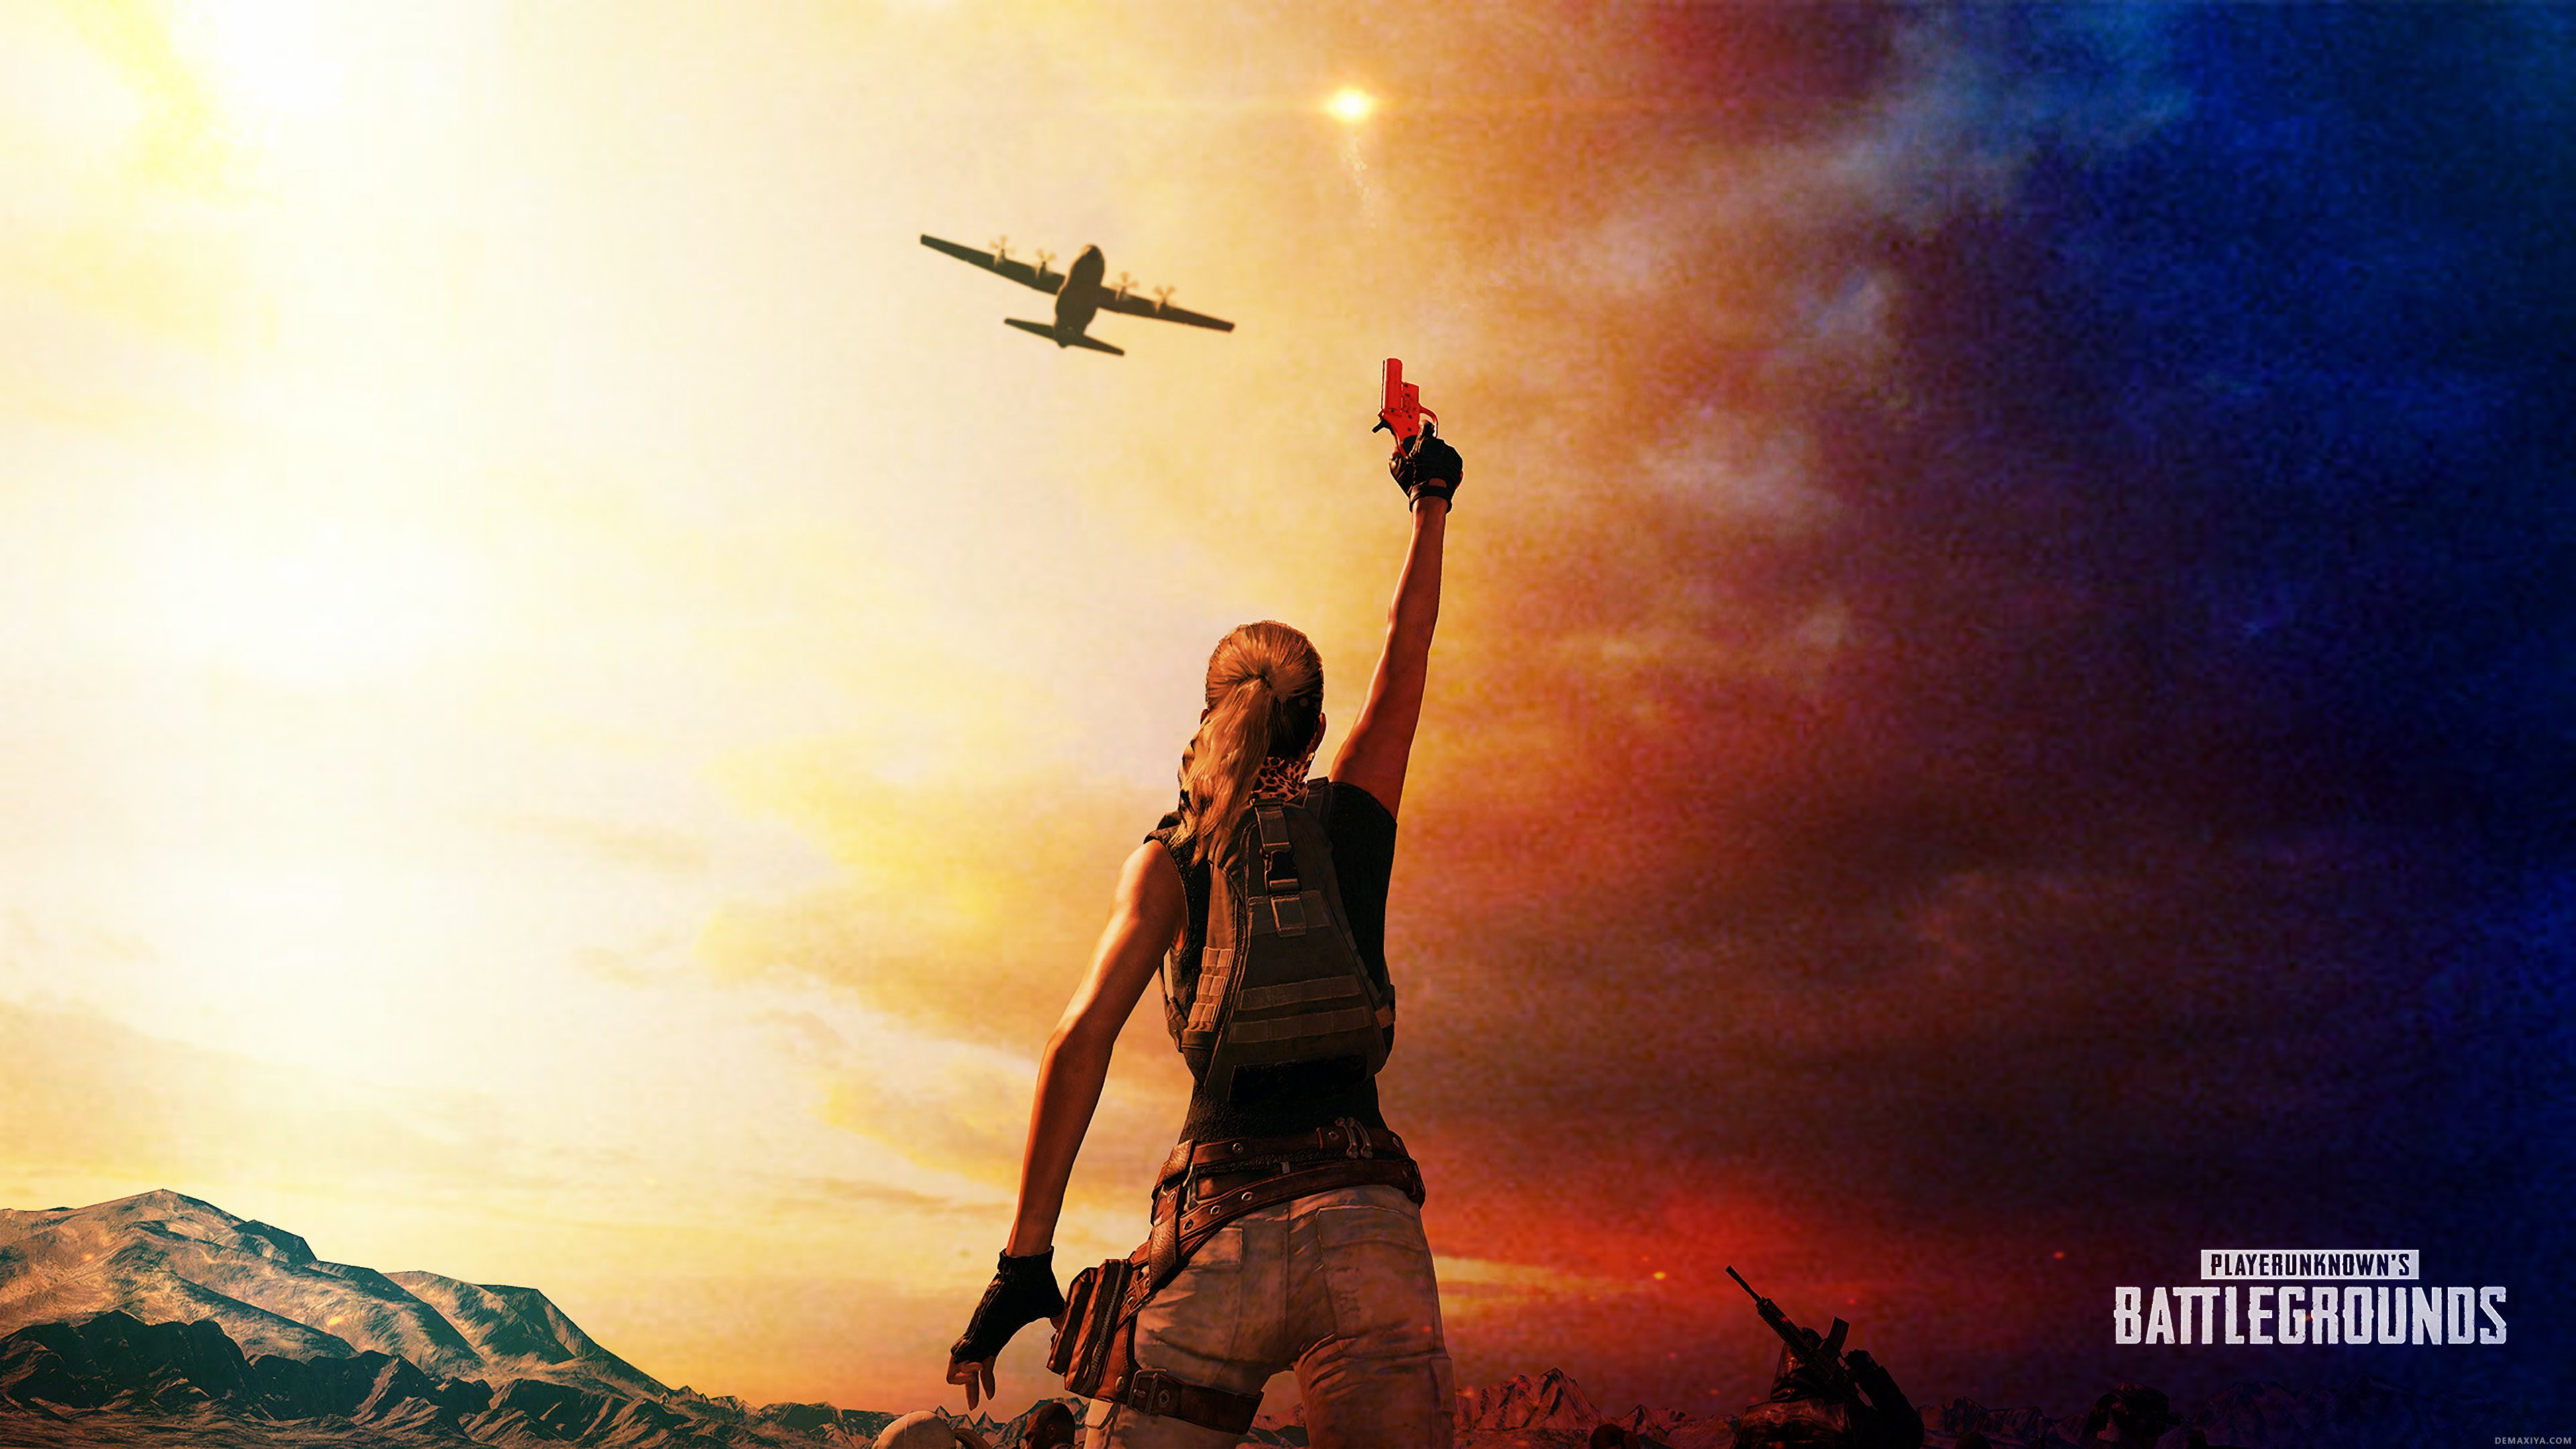 Pubg Gets Flare Gun Miramar Event Mode: PUBG Mobile And PC Is Haraam According To New Islamic Fatwa